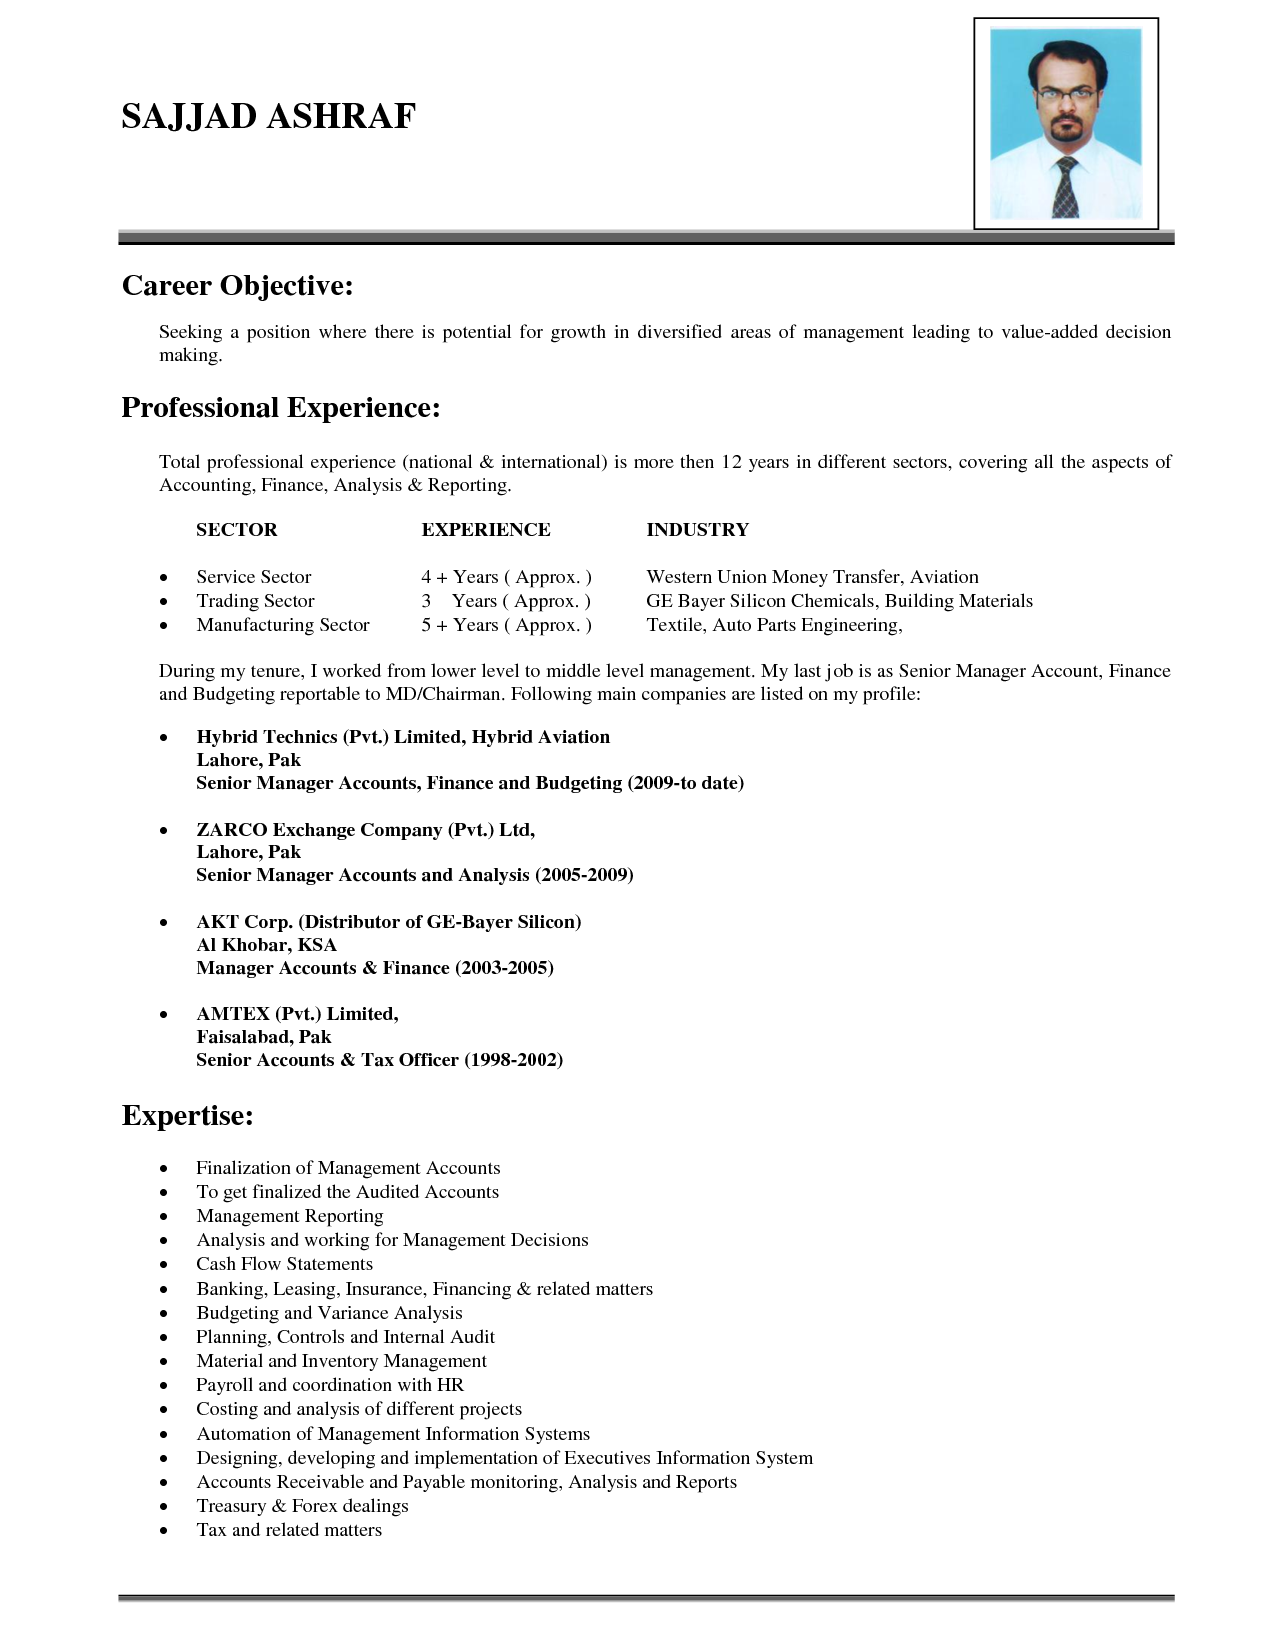 Good resume objectives examples